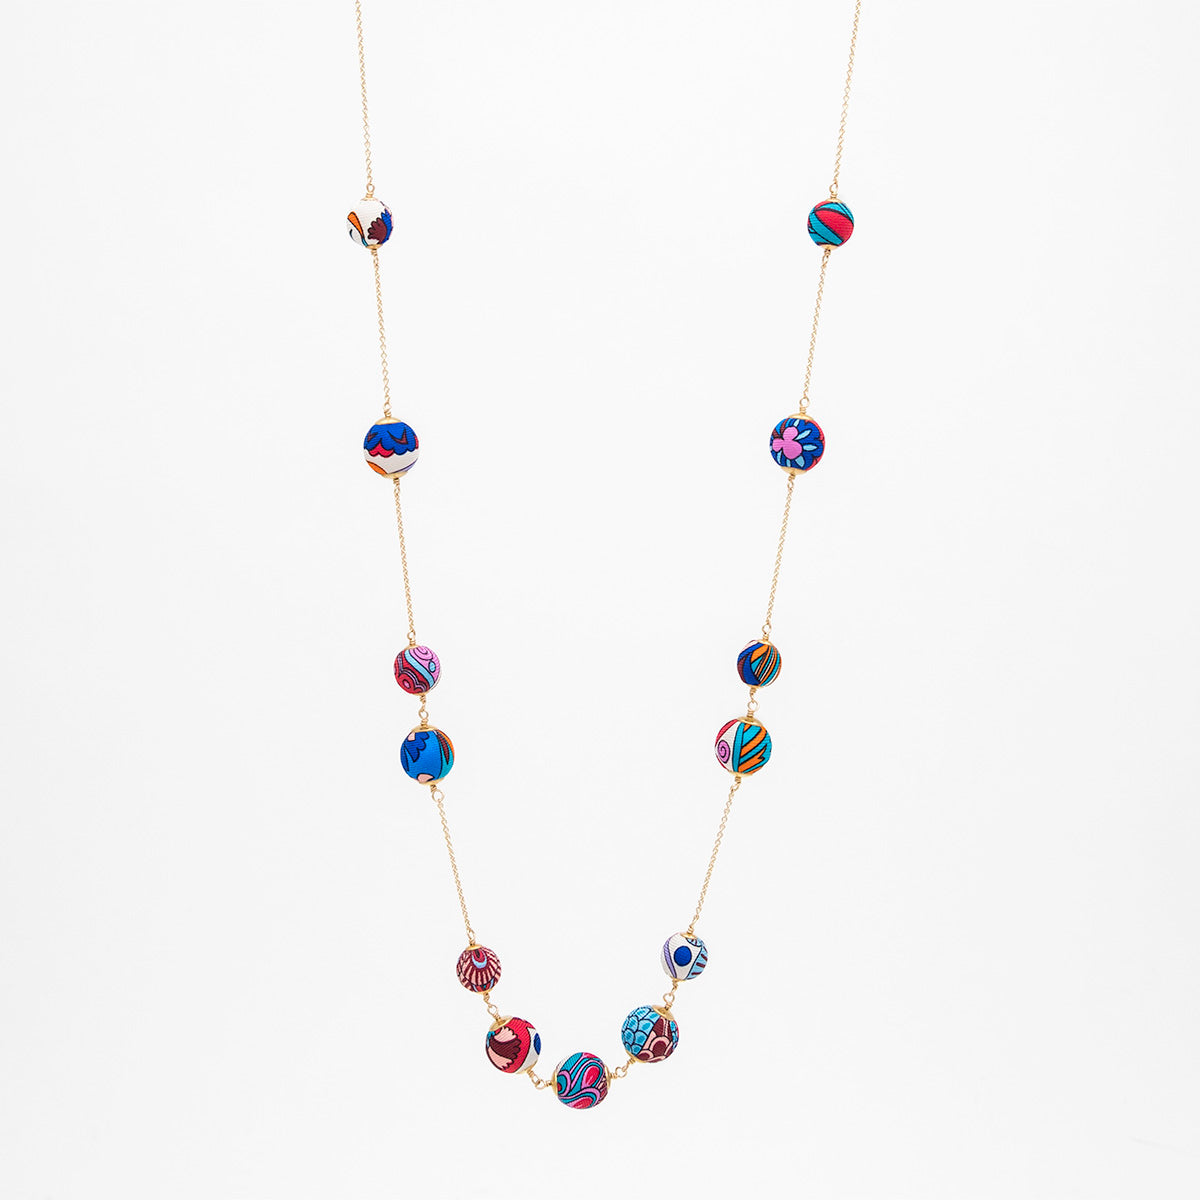 Liberty Peacock Garden Orbital Necklace Long